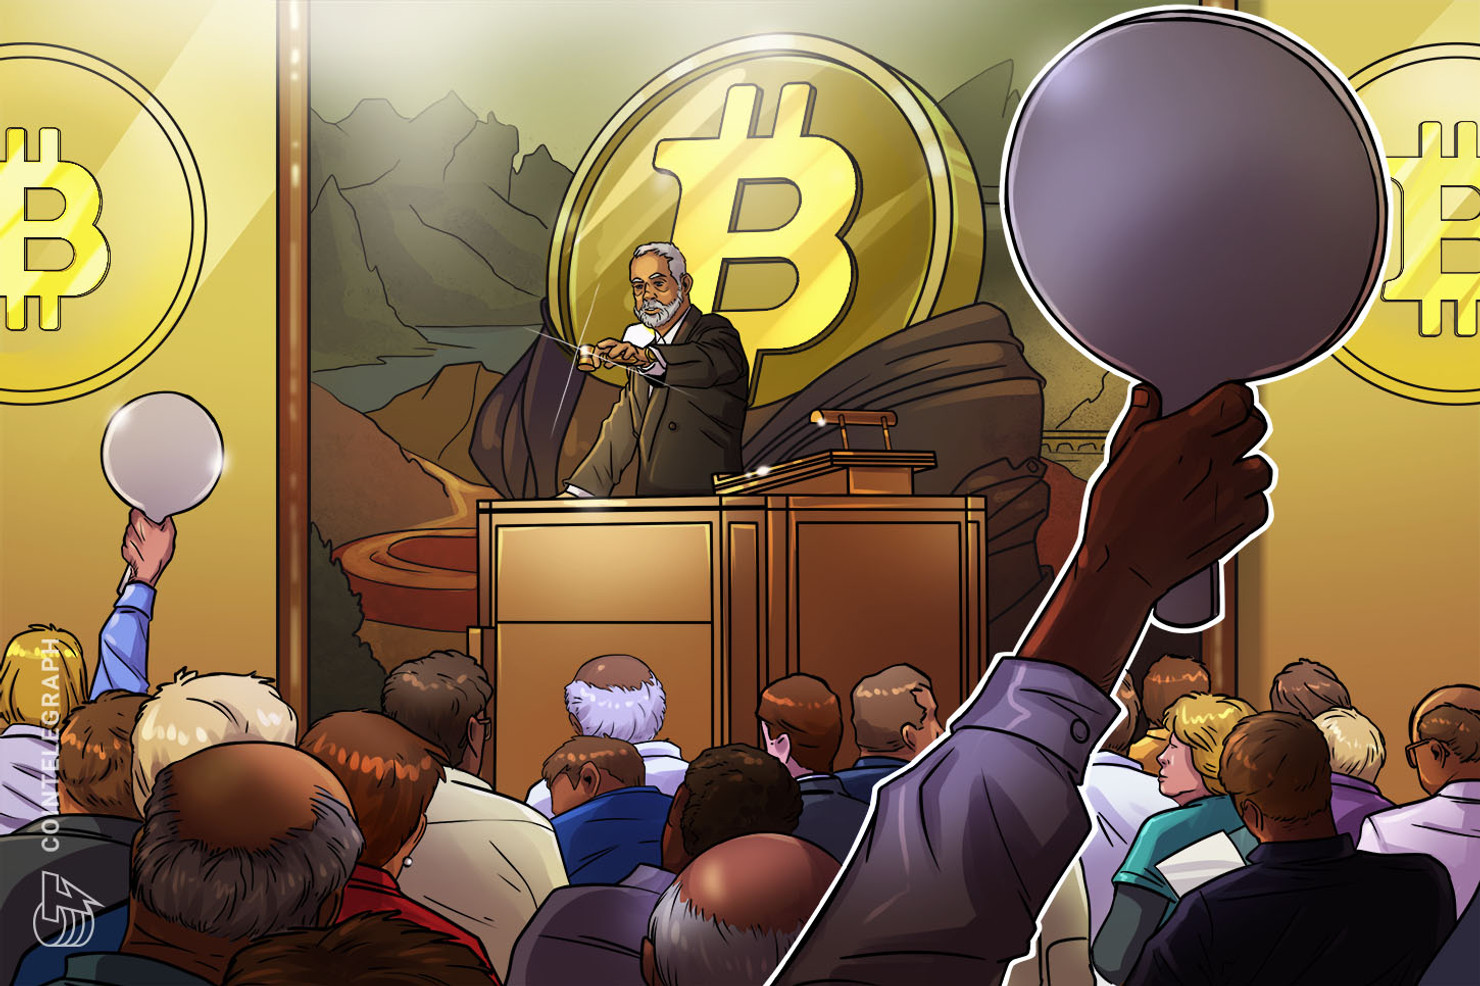 US Marshals to Auction $37M in Confiscated Bitcoin in February